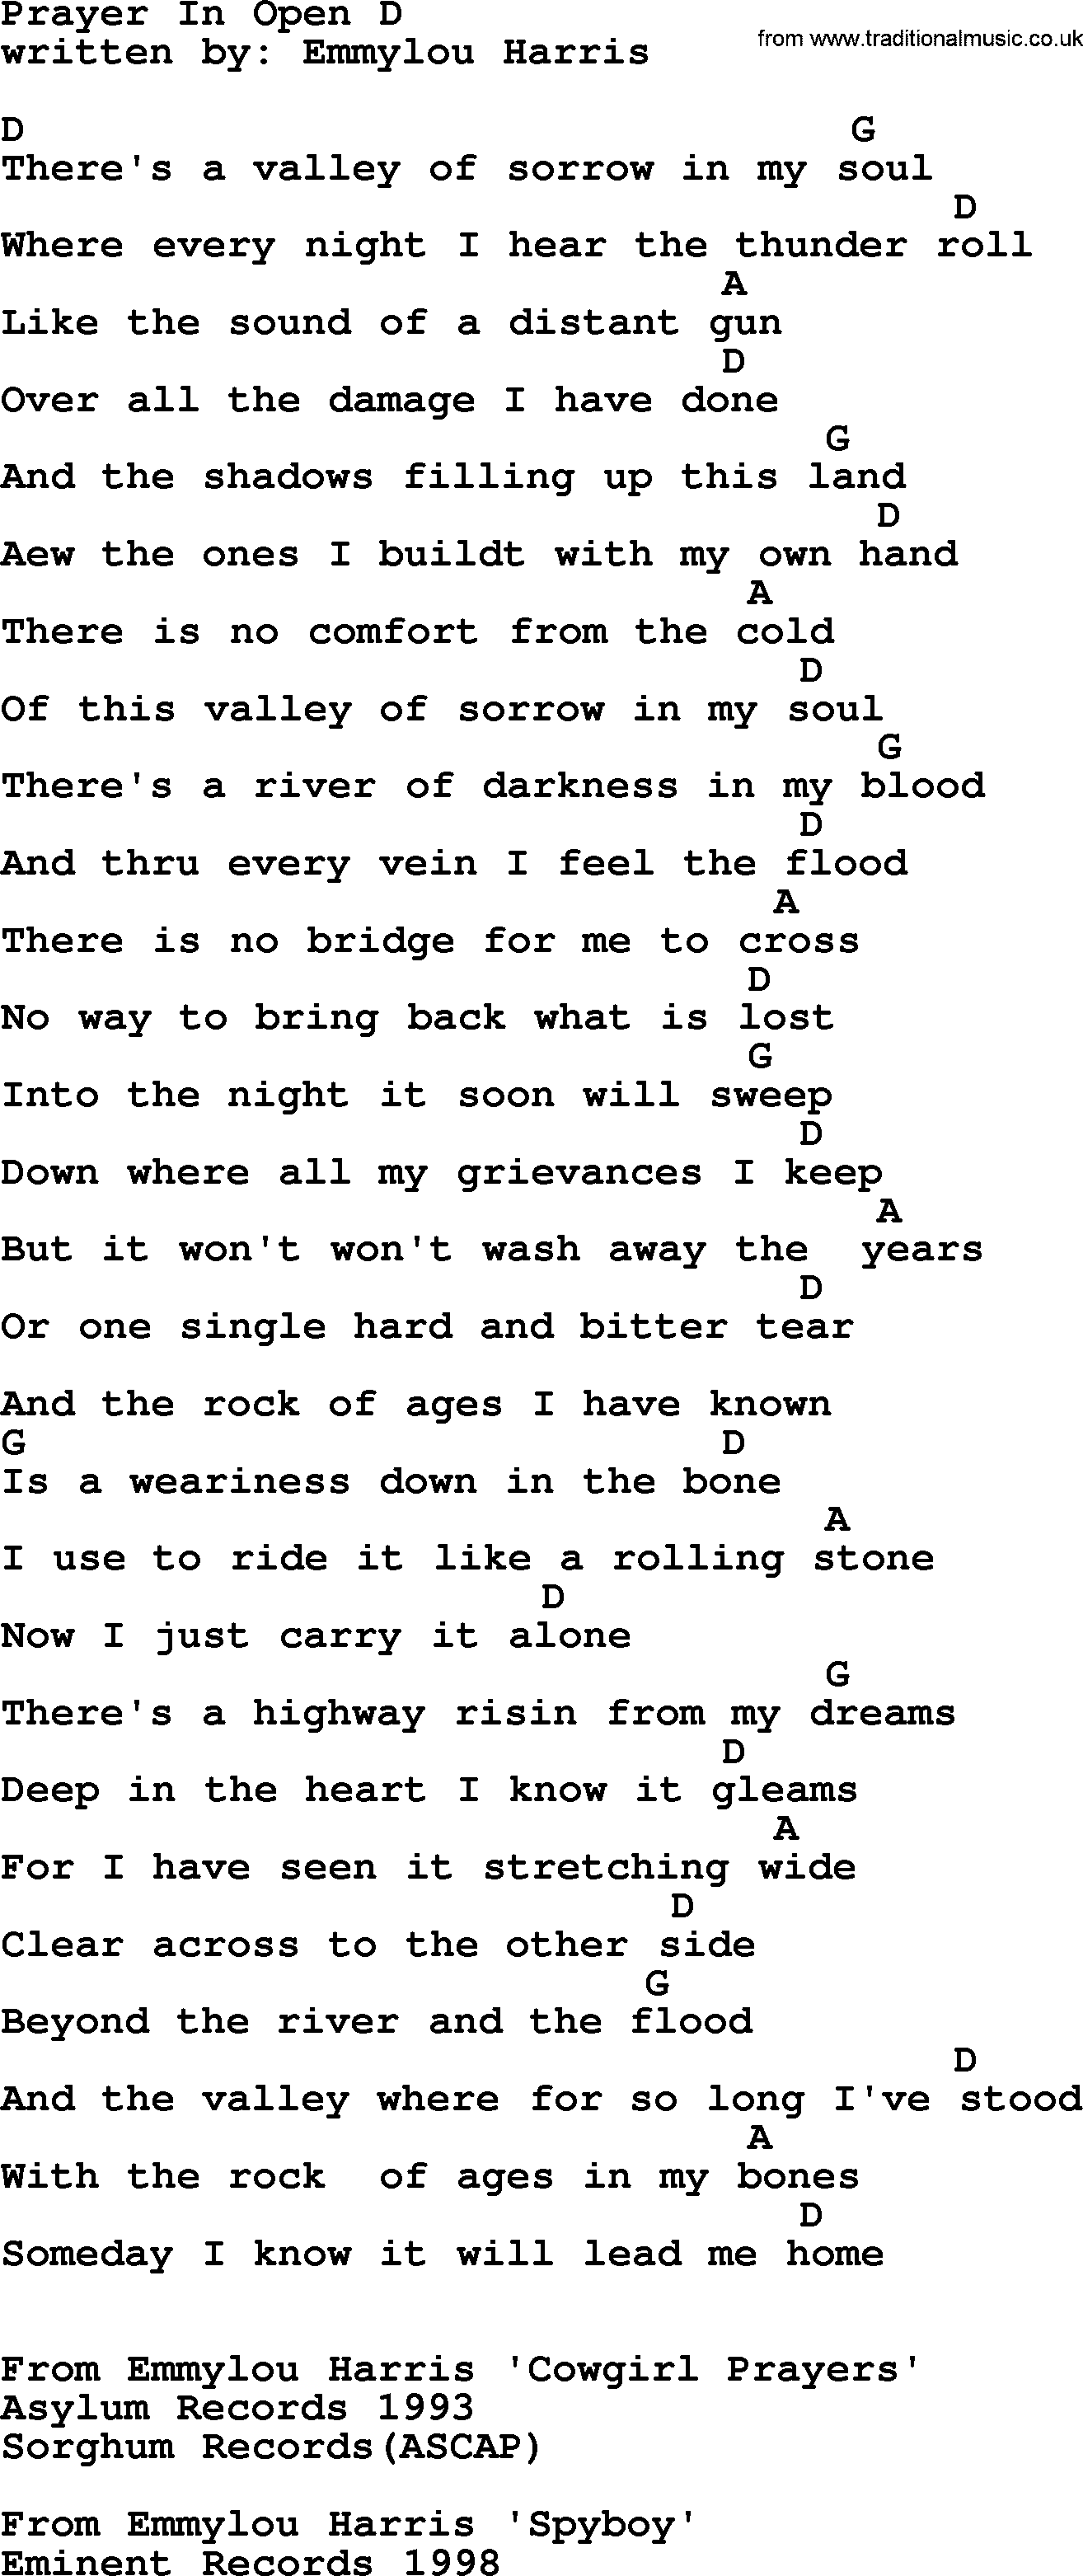 Emmylou Harris Song Prayer In Open D Lyrics And Chords